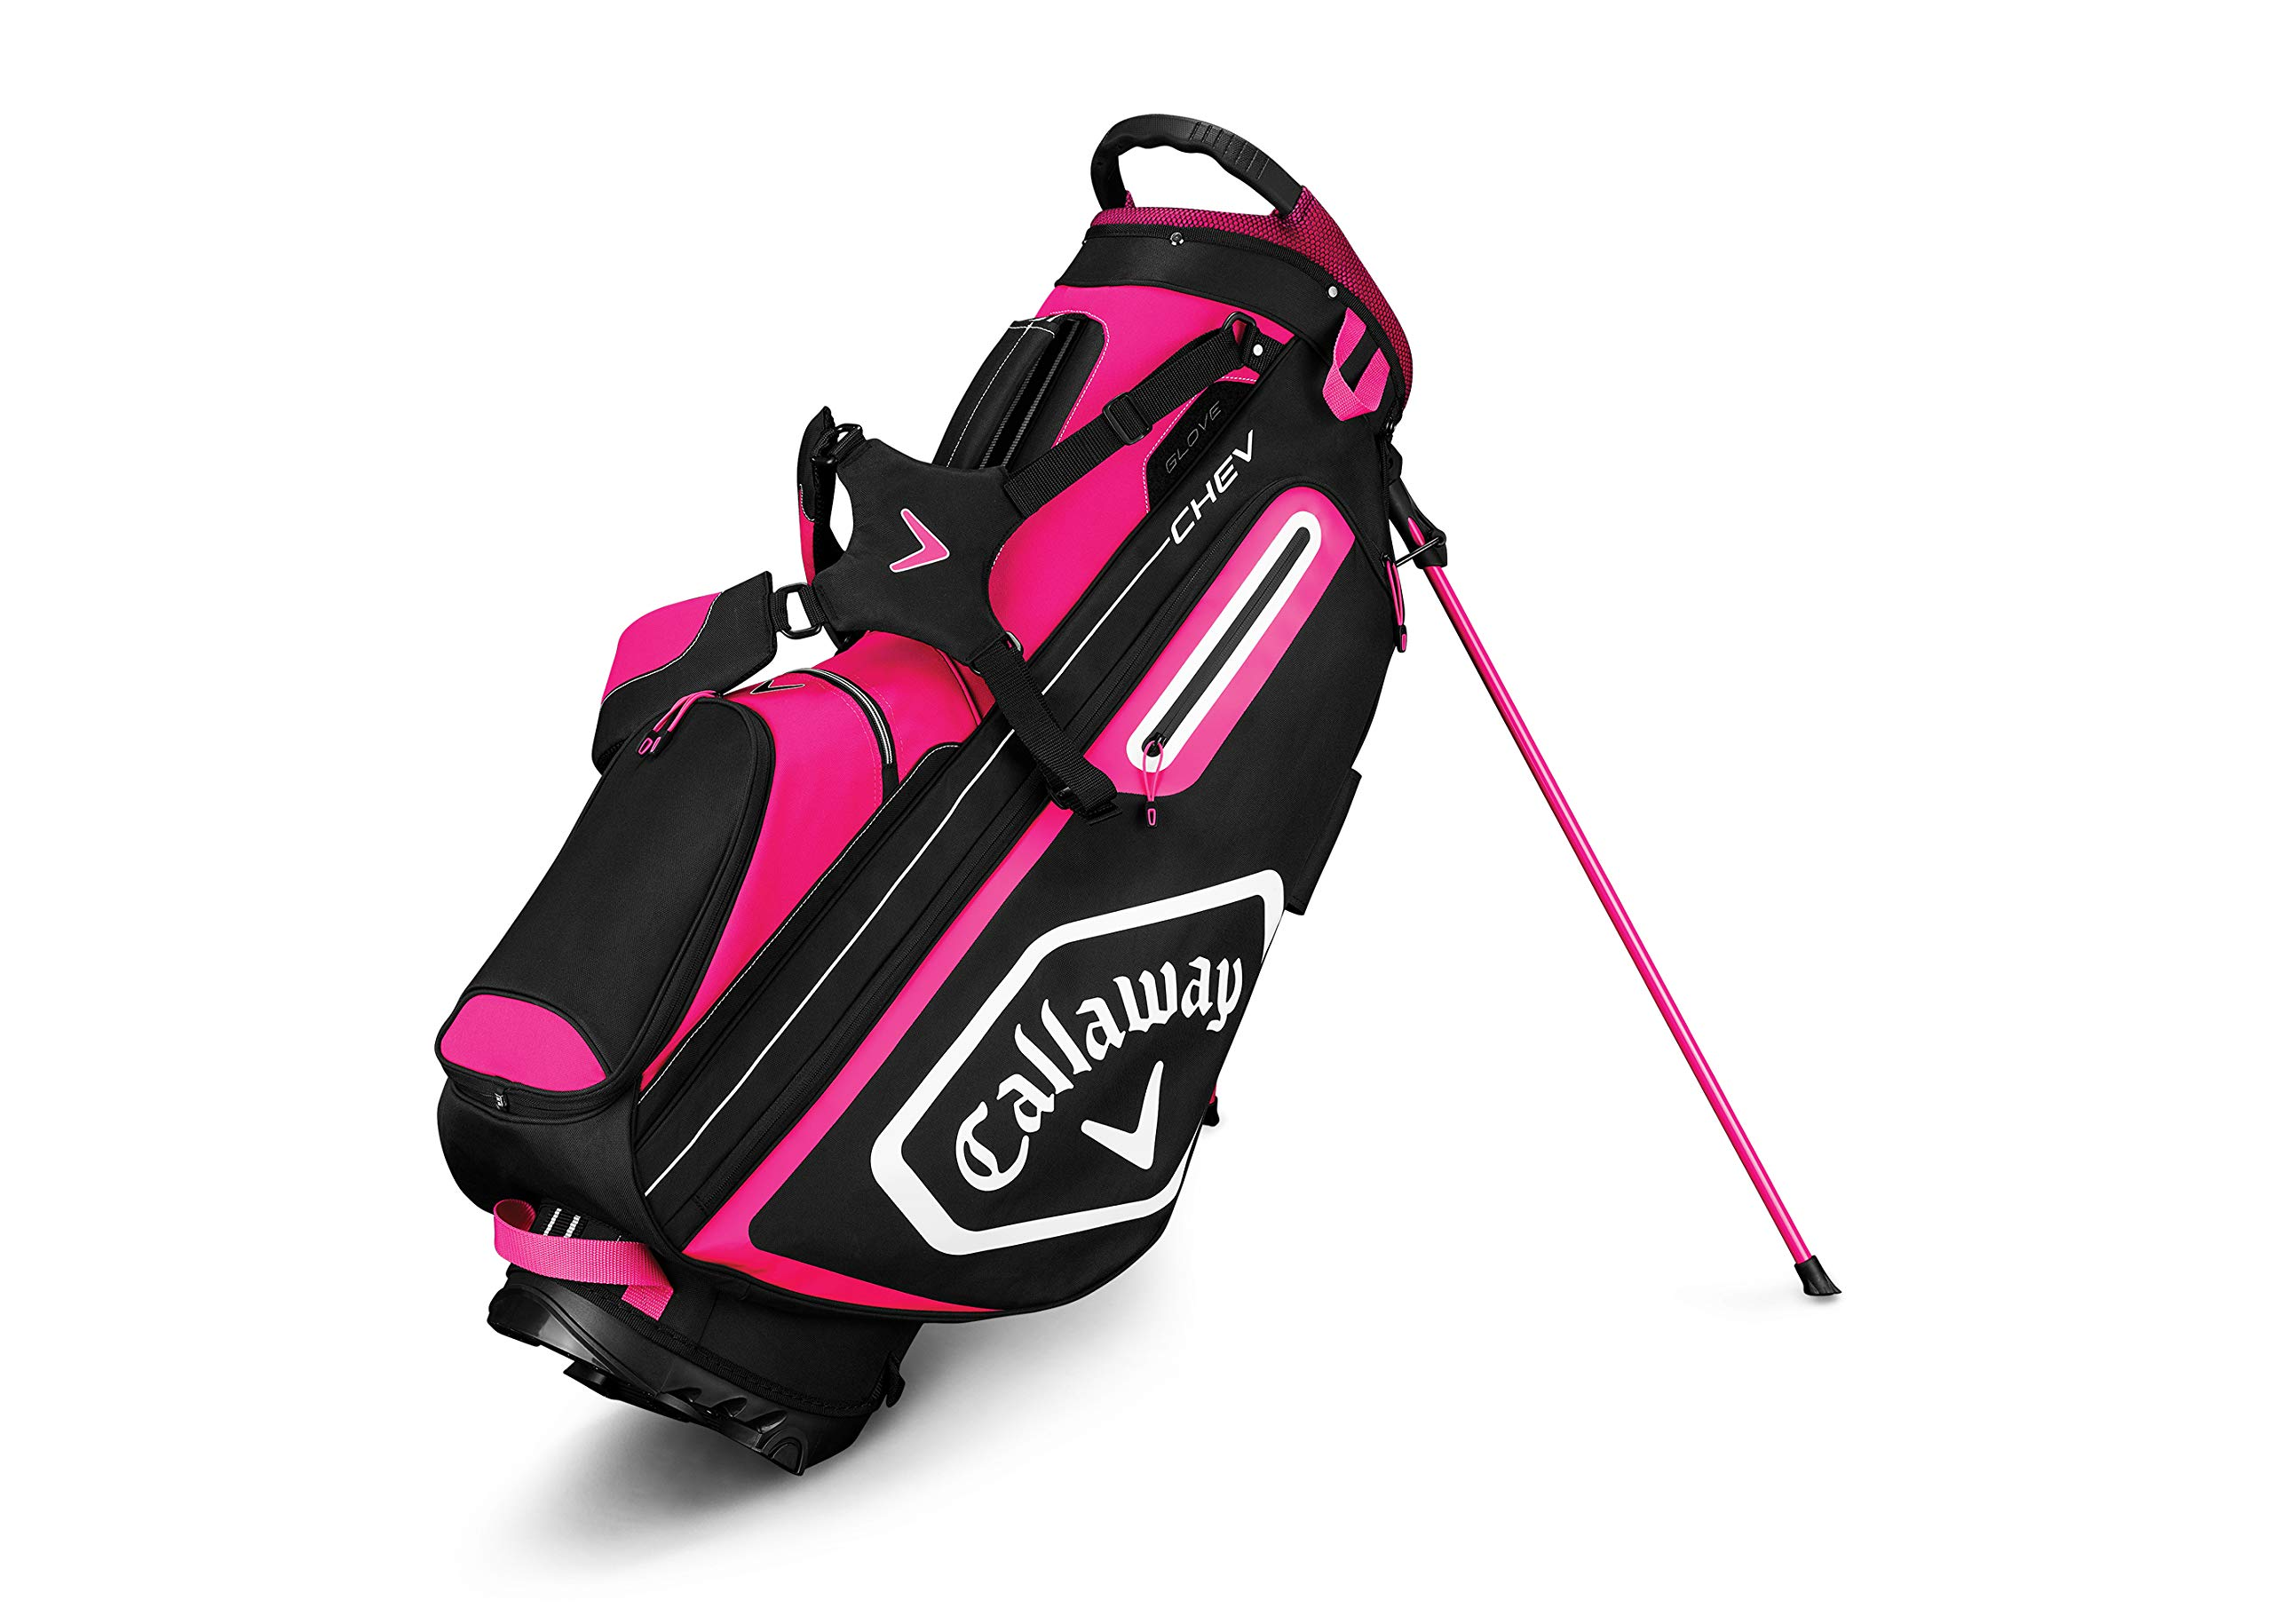 Callaway Golf 2019 Chev Stand Bag, Pink/White/Black by Callaway